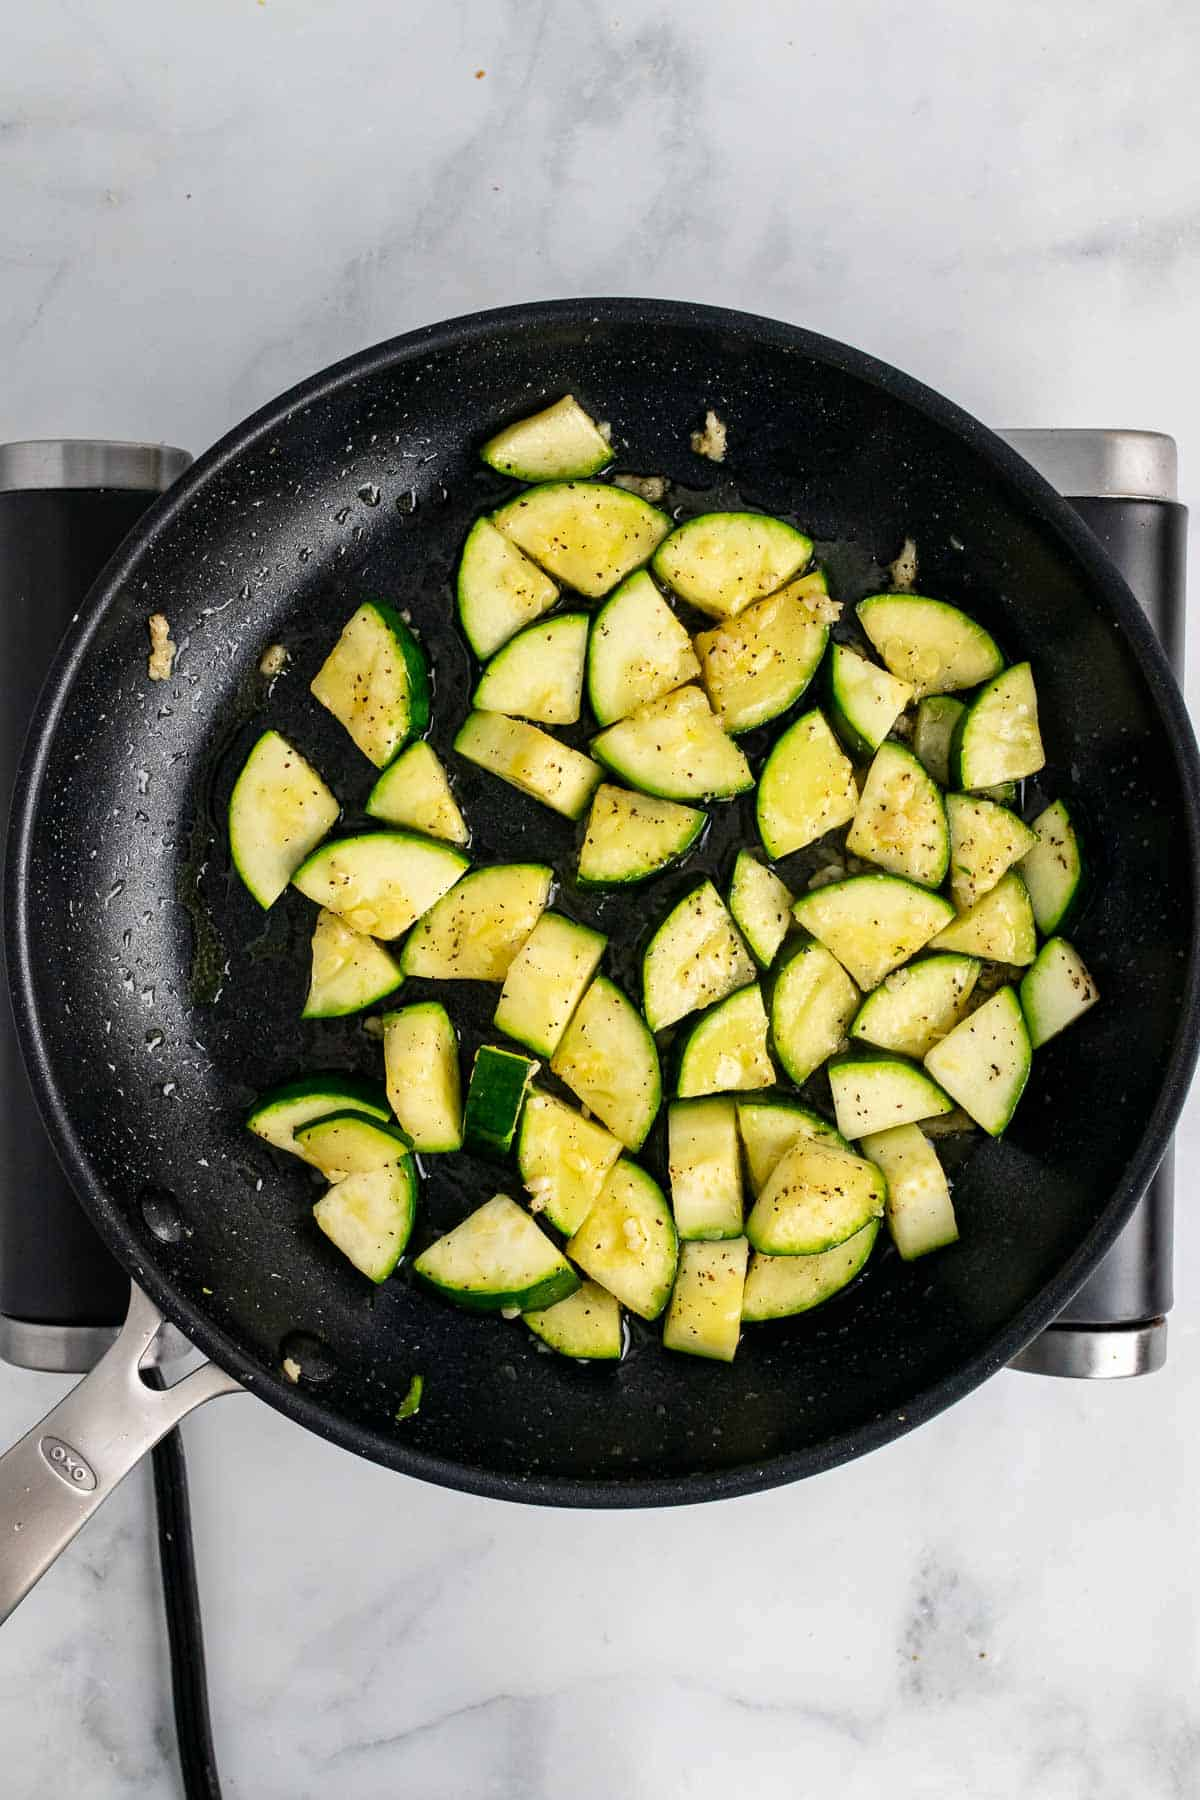 Cooked zucchini in pan